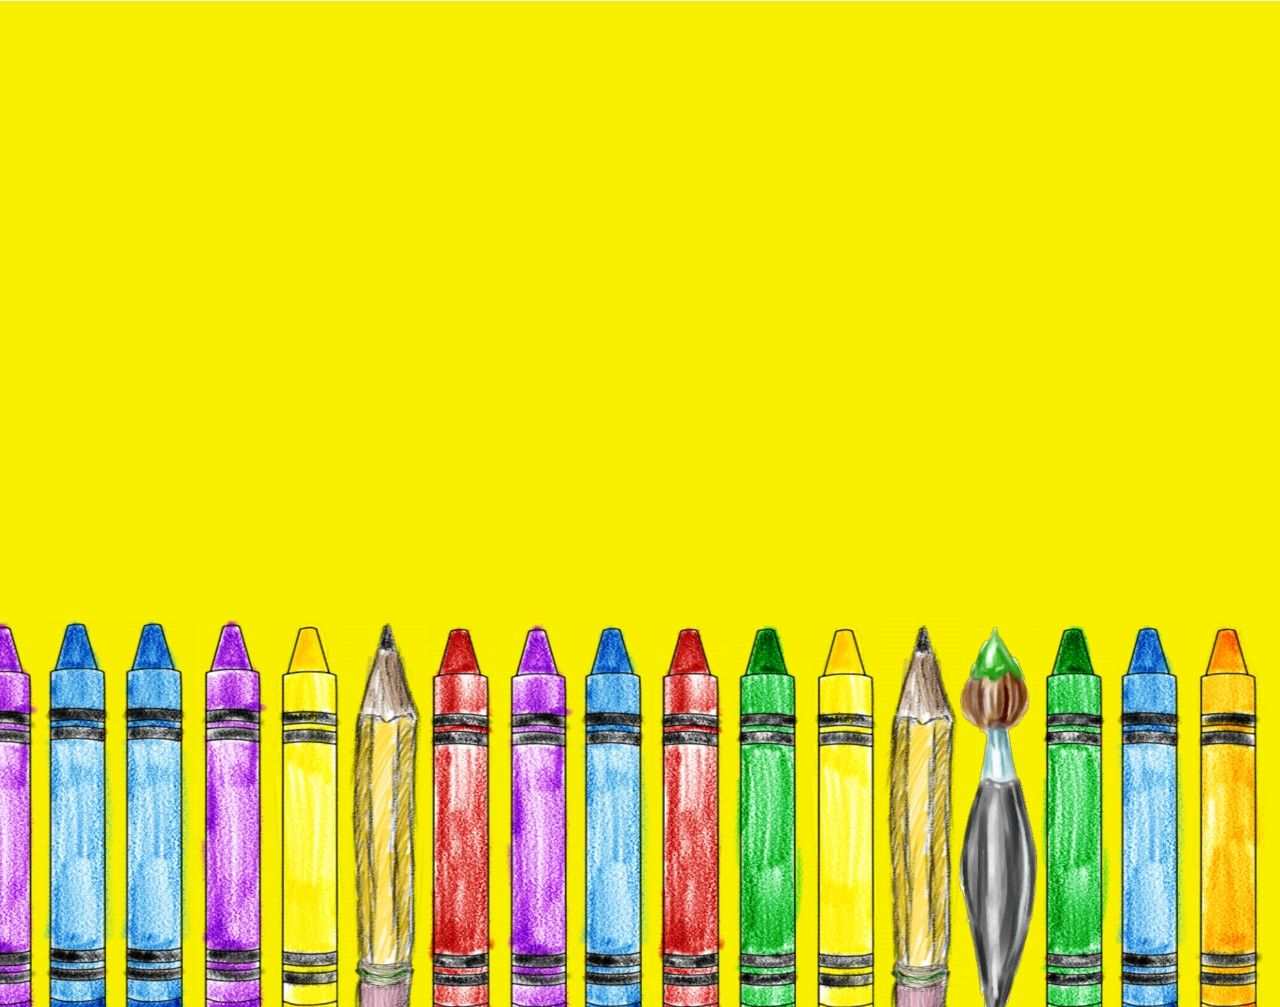 Pin By Becky Aman On Yellow Free School Supplies Powerpoint Background Templates Powerpoint